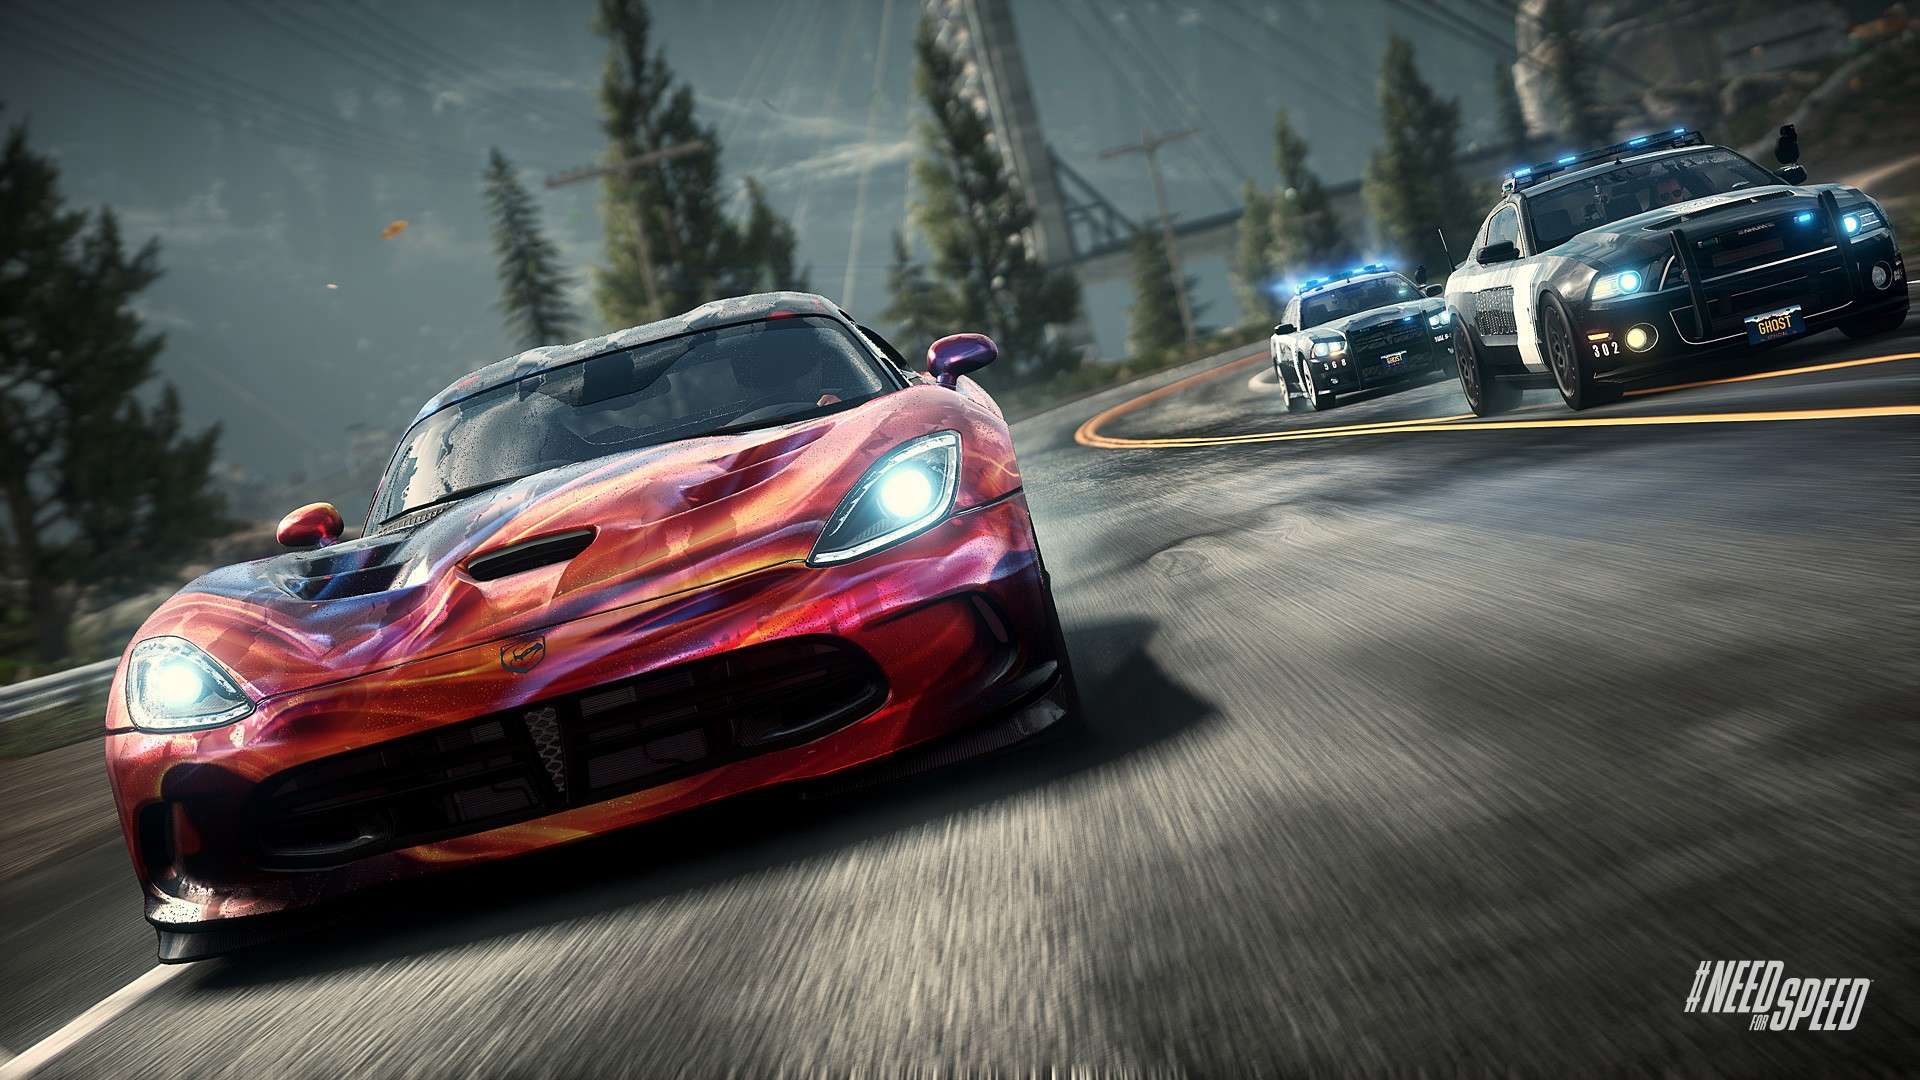 Need for Speed: Rivals Computer Wallpapers, Desktop ...Nfs Rivals Wallpaper For Pc